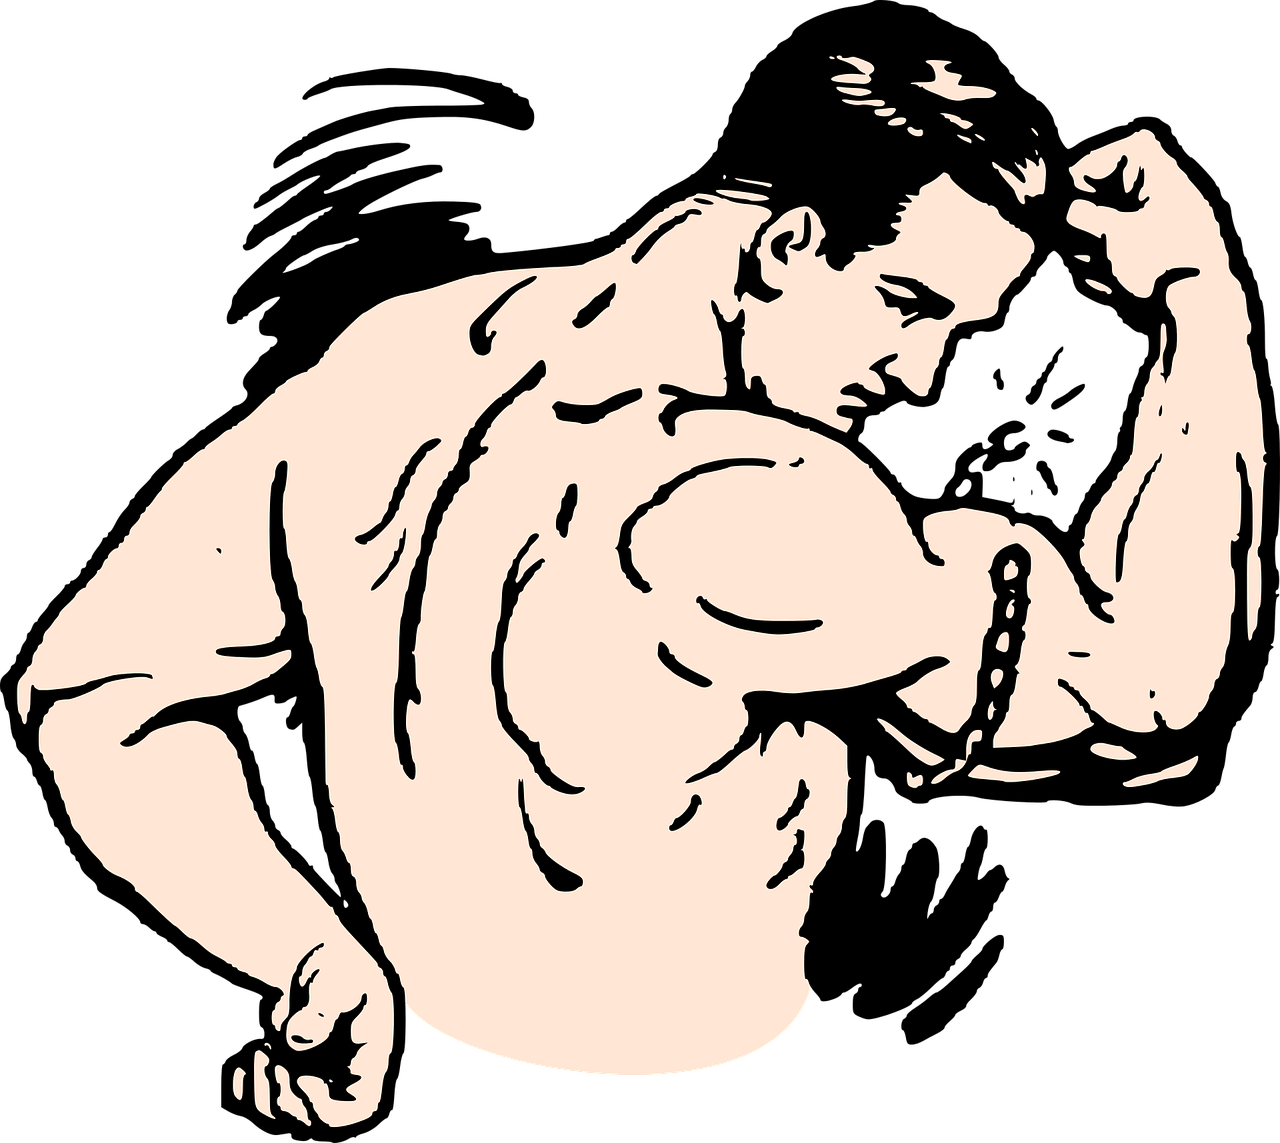 Png muscle arms. This is why your